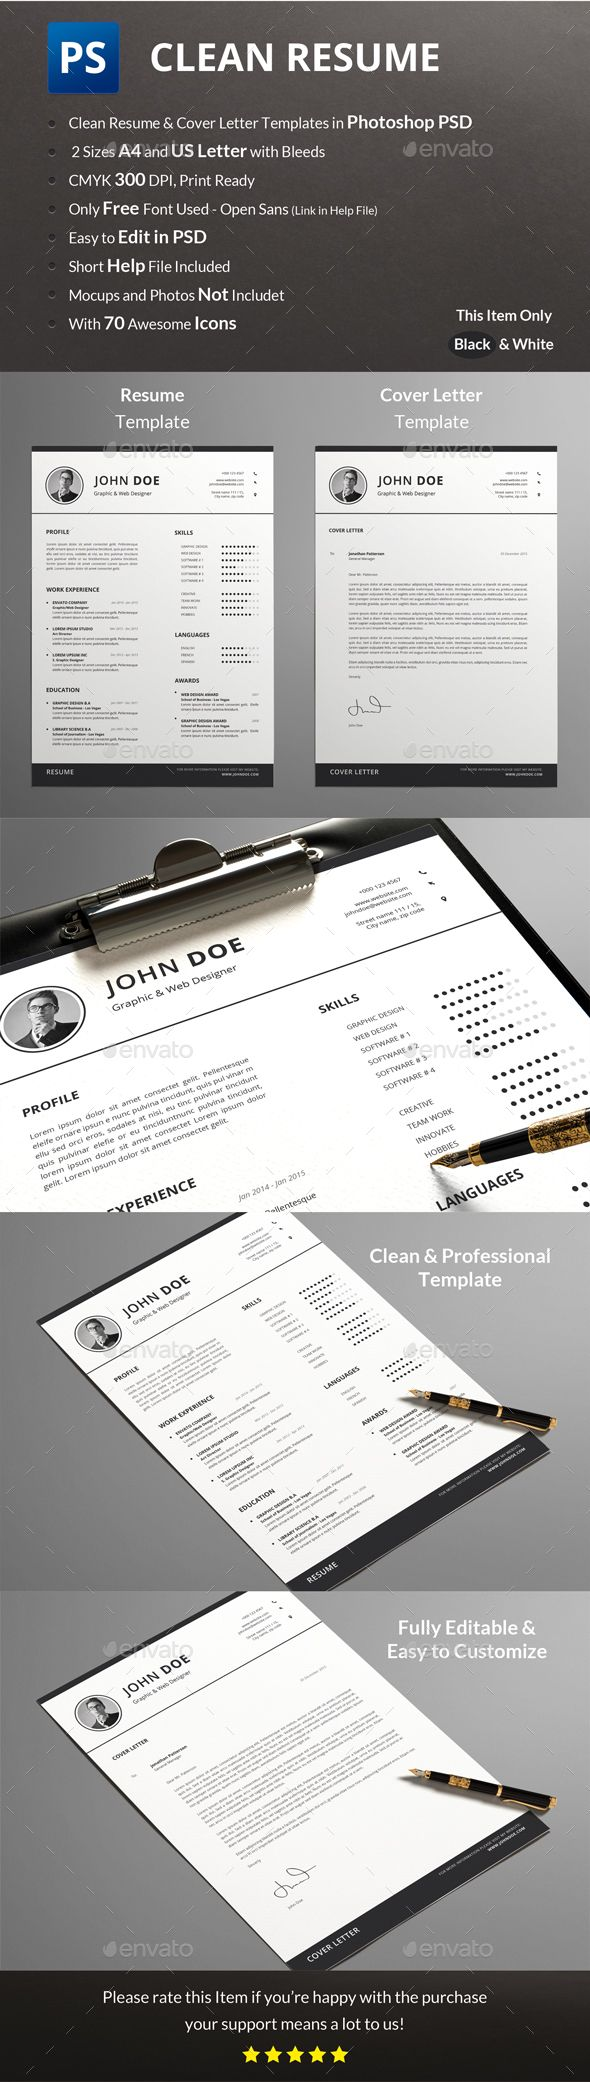 Resume Template PSD design Download httpgraphicrivernetitem 19